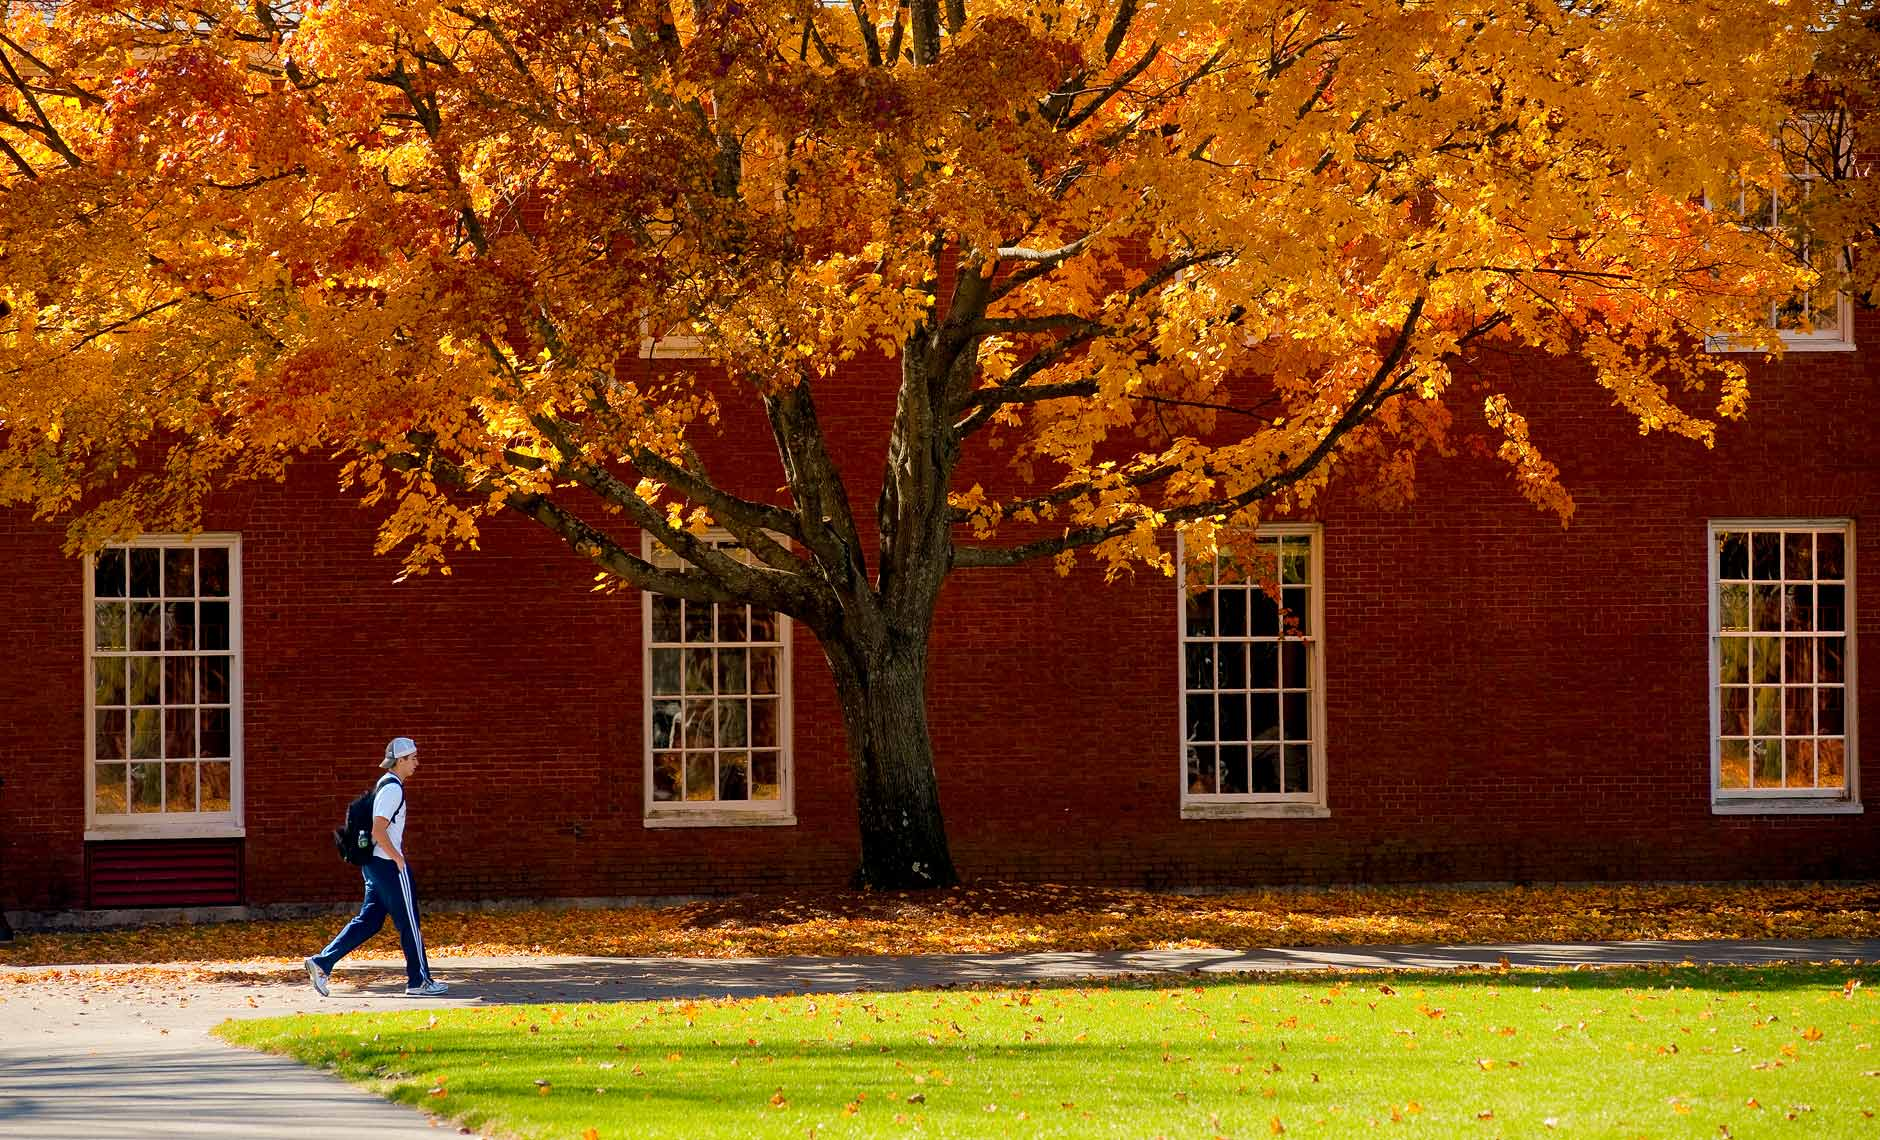 lone college student walking on campus with fall foliage